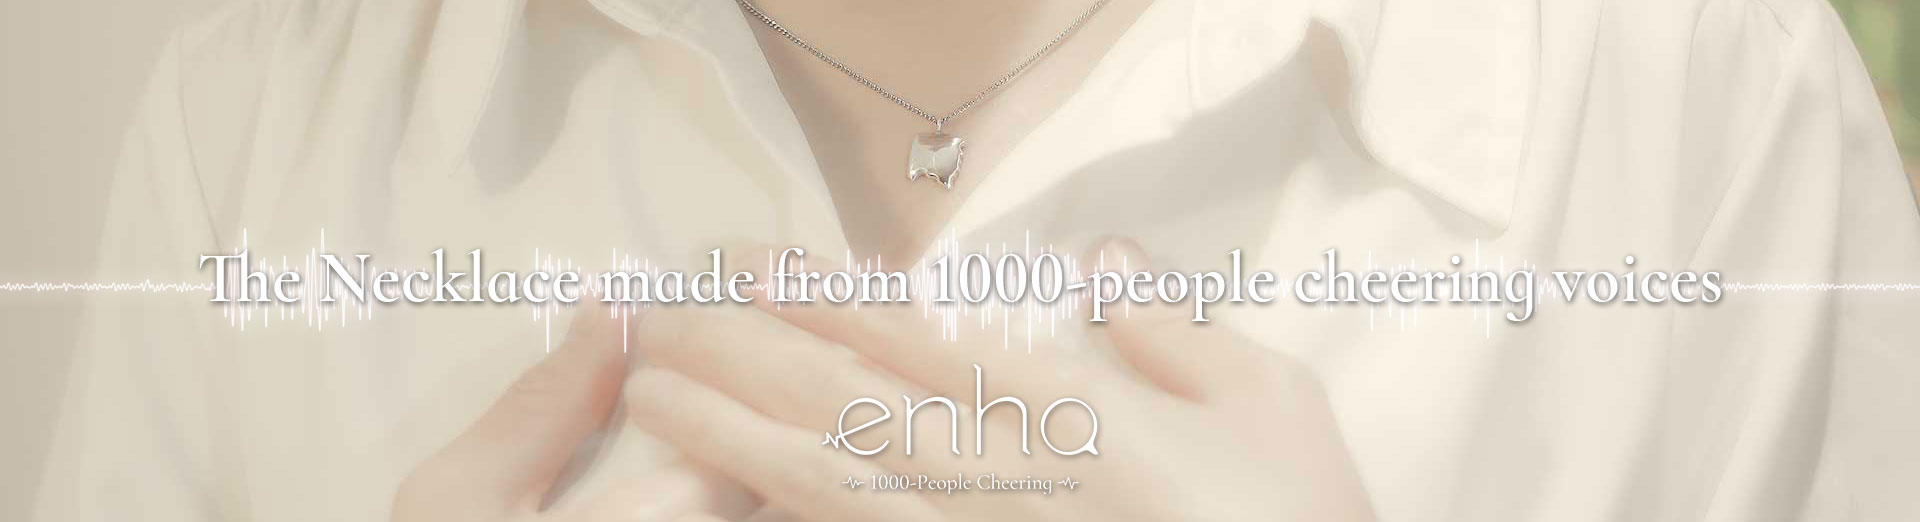 enha necklace made from 1000-people cheering voices.